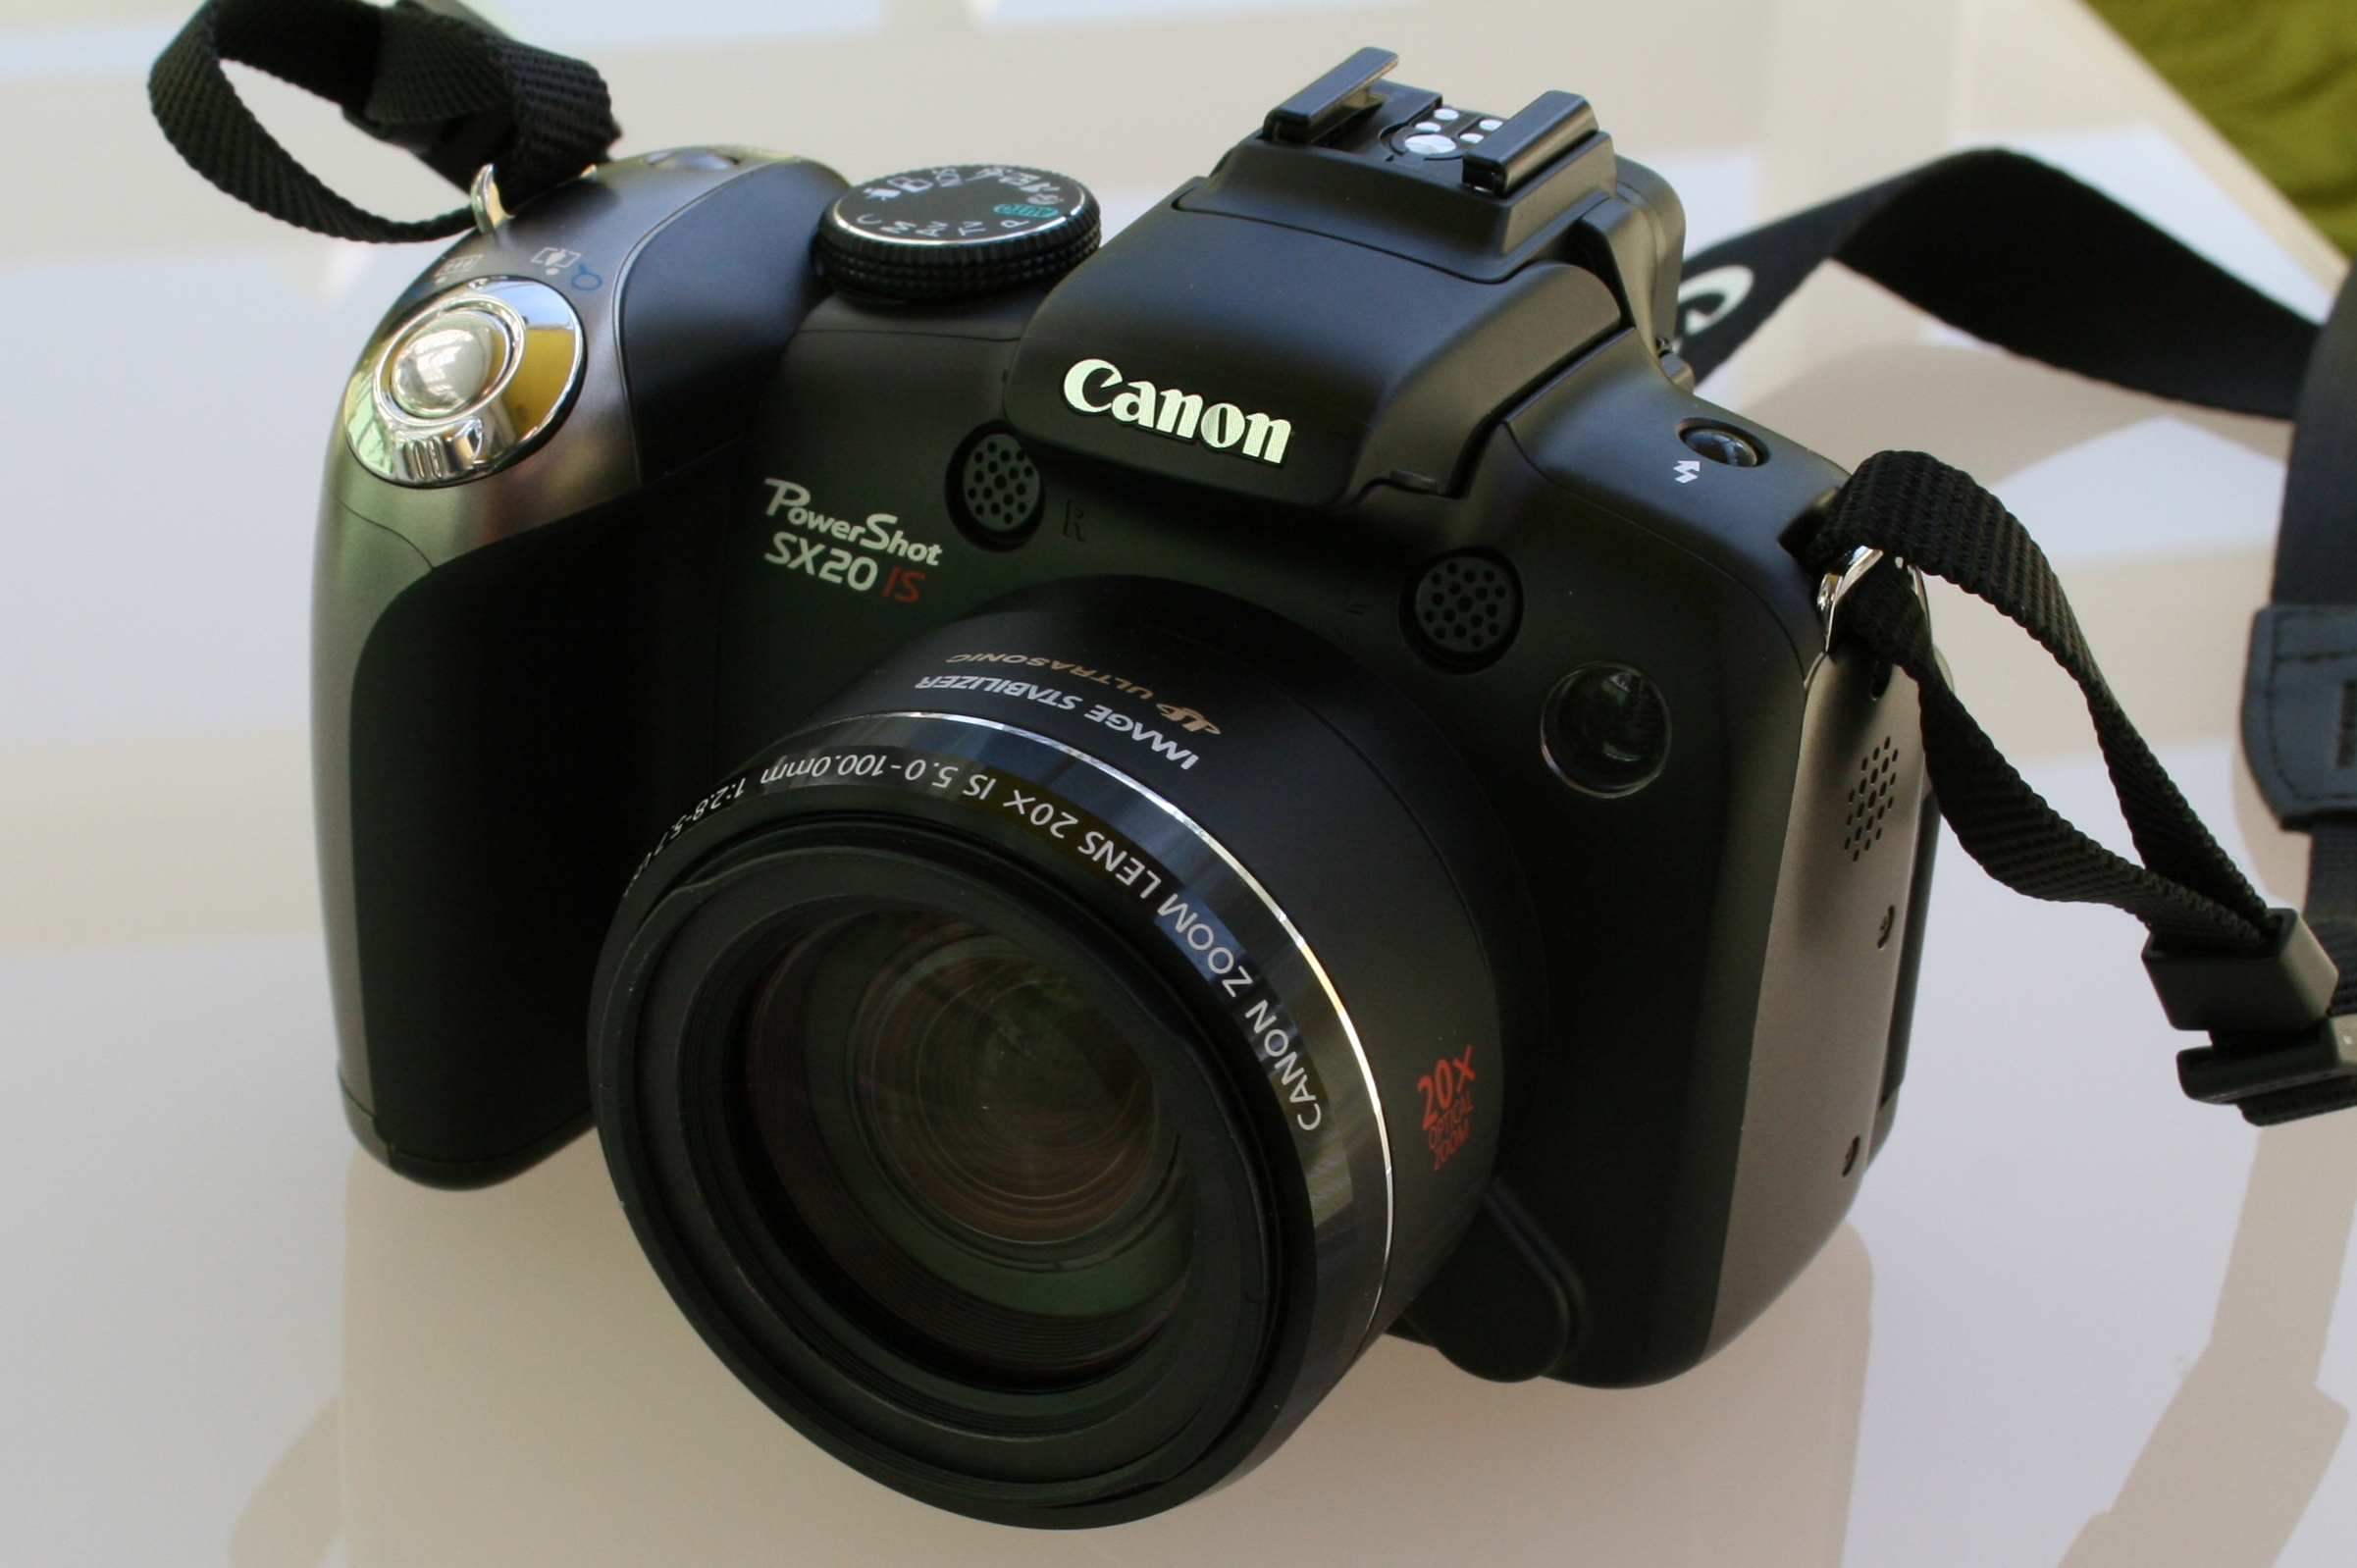 DRIVER FOR CANON POWERSHOT SX20 IS